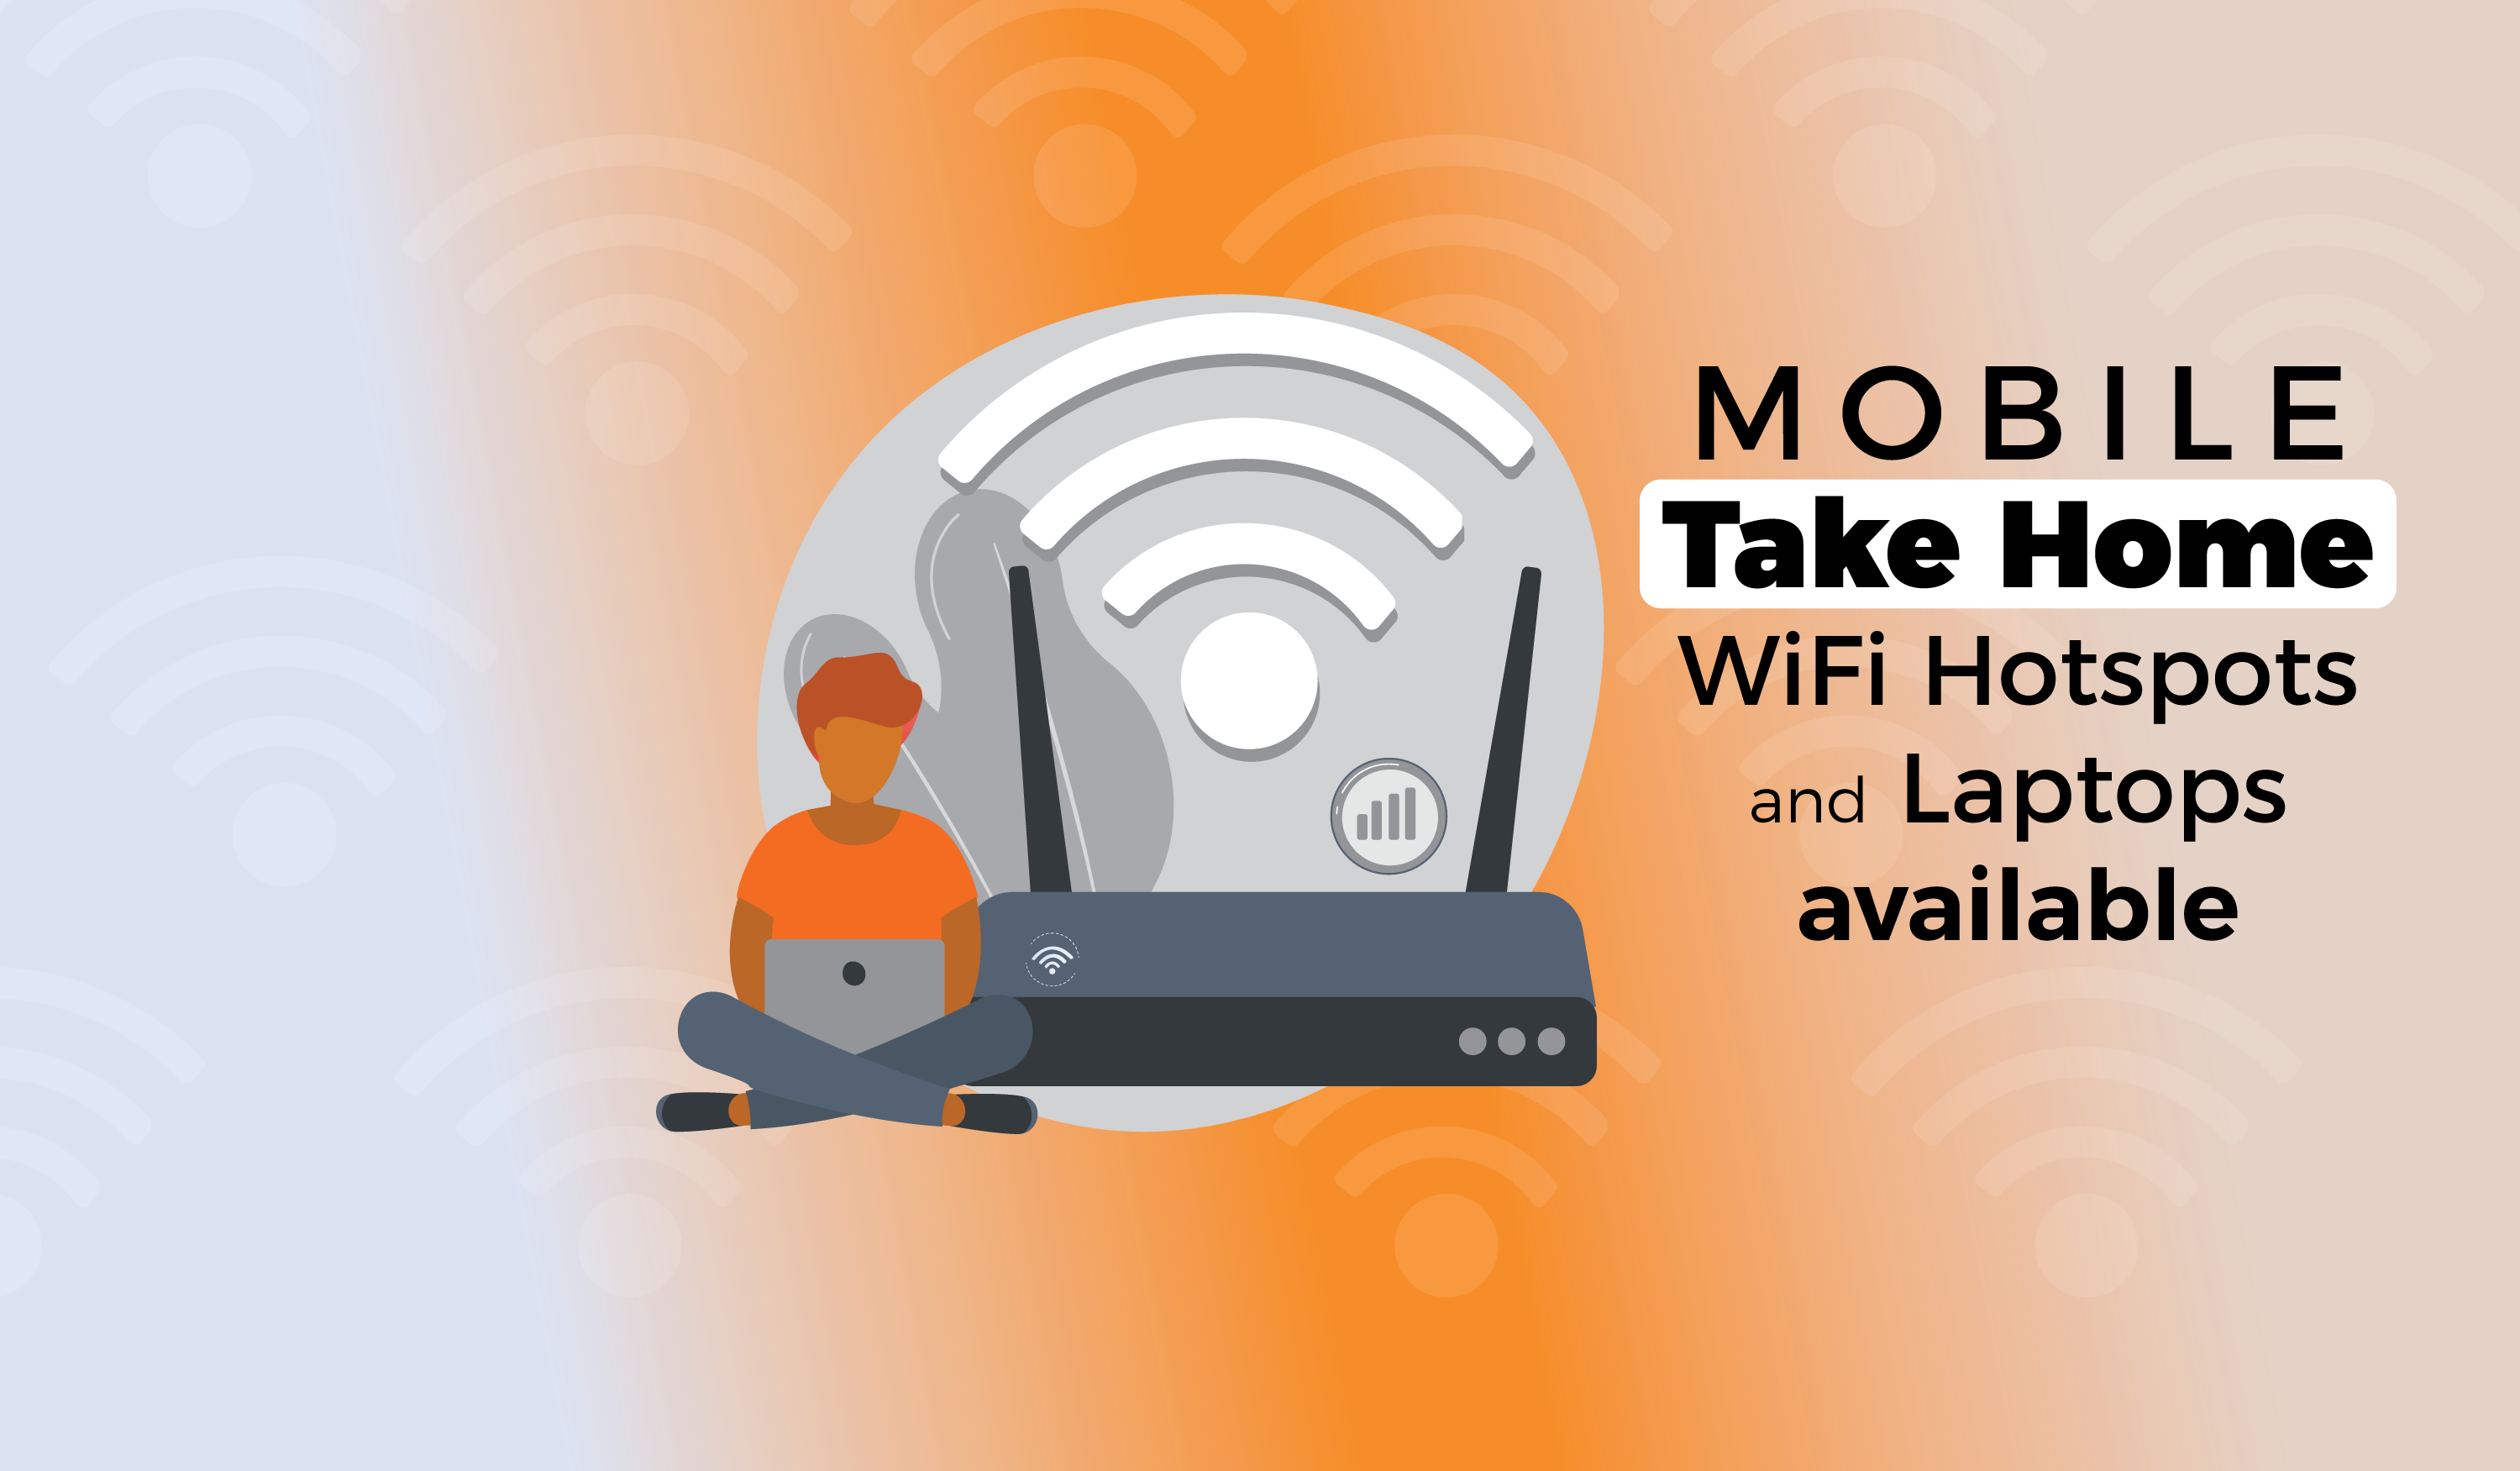 Mobile Take Home WiFi Hotspots and laptops available